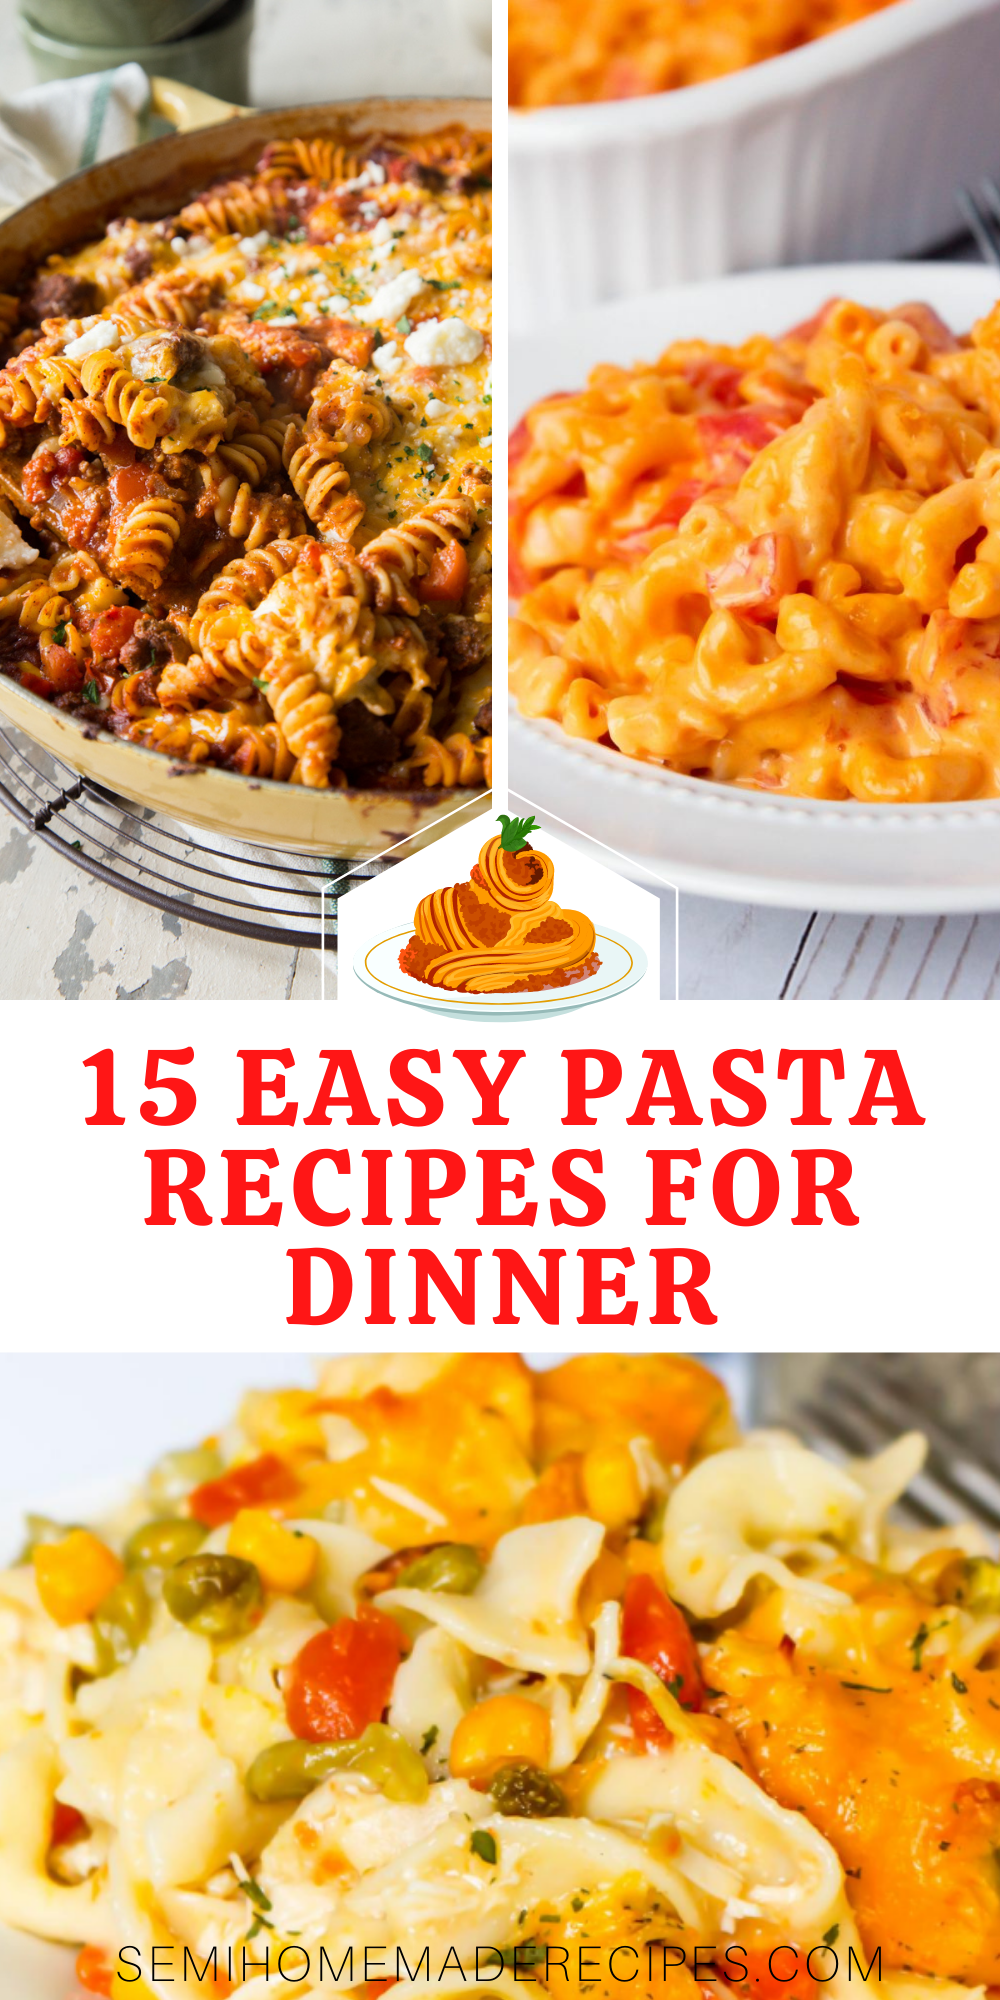 Love Pasta and need some easy dinner ideas? You've come to the right place! Here are 15 Easy Pasta Recipes for Dinner or lunch that you're going to love!